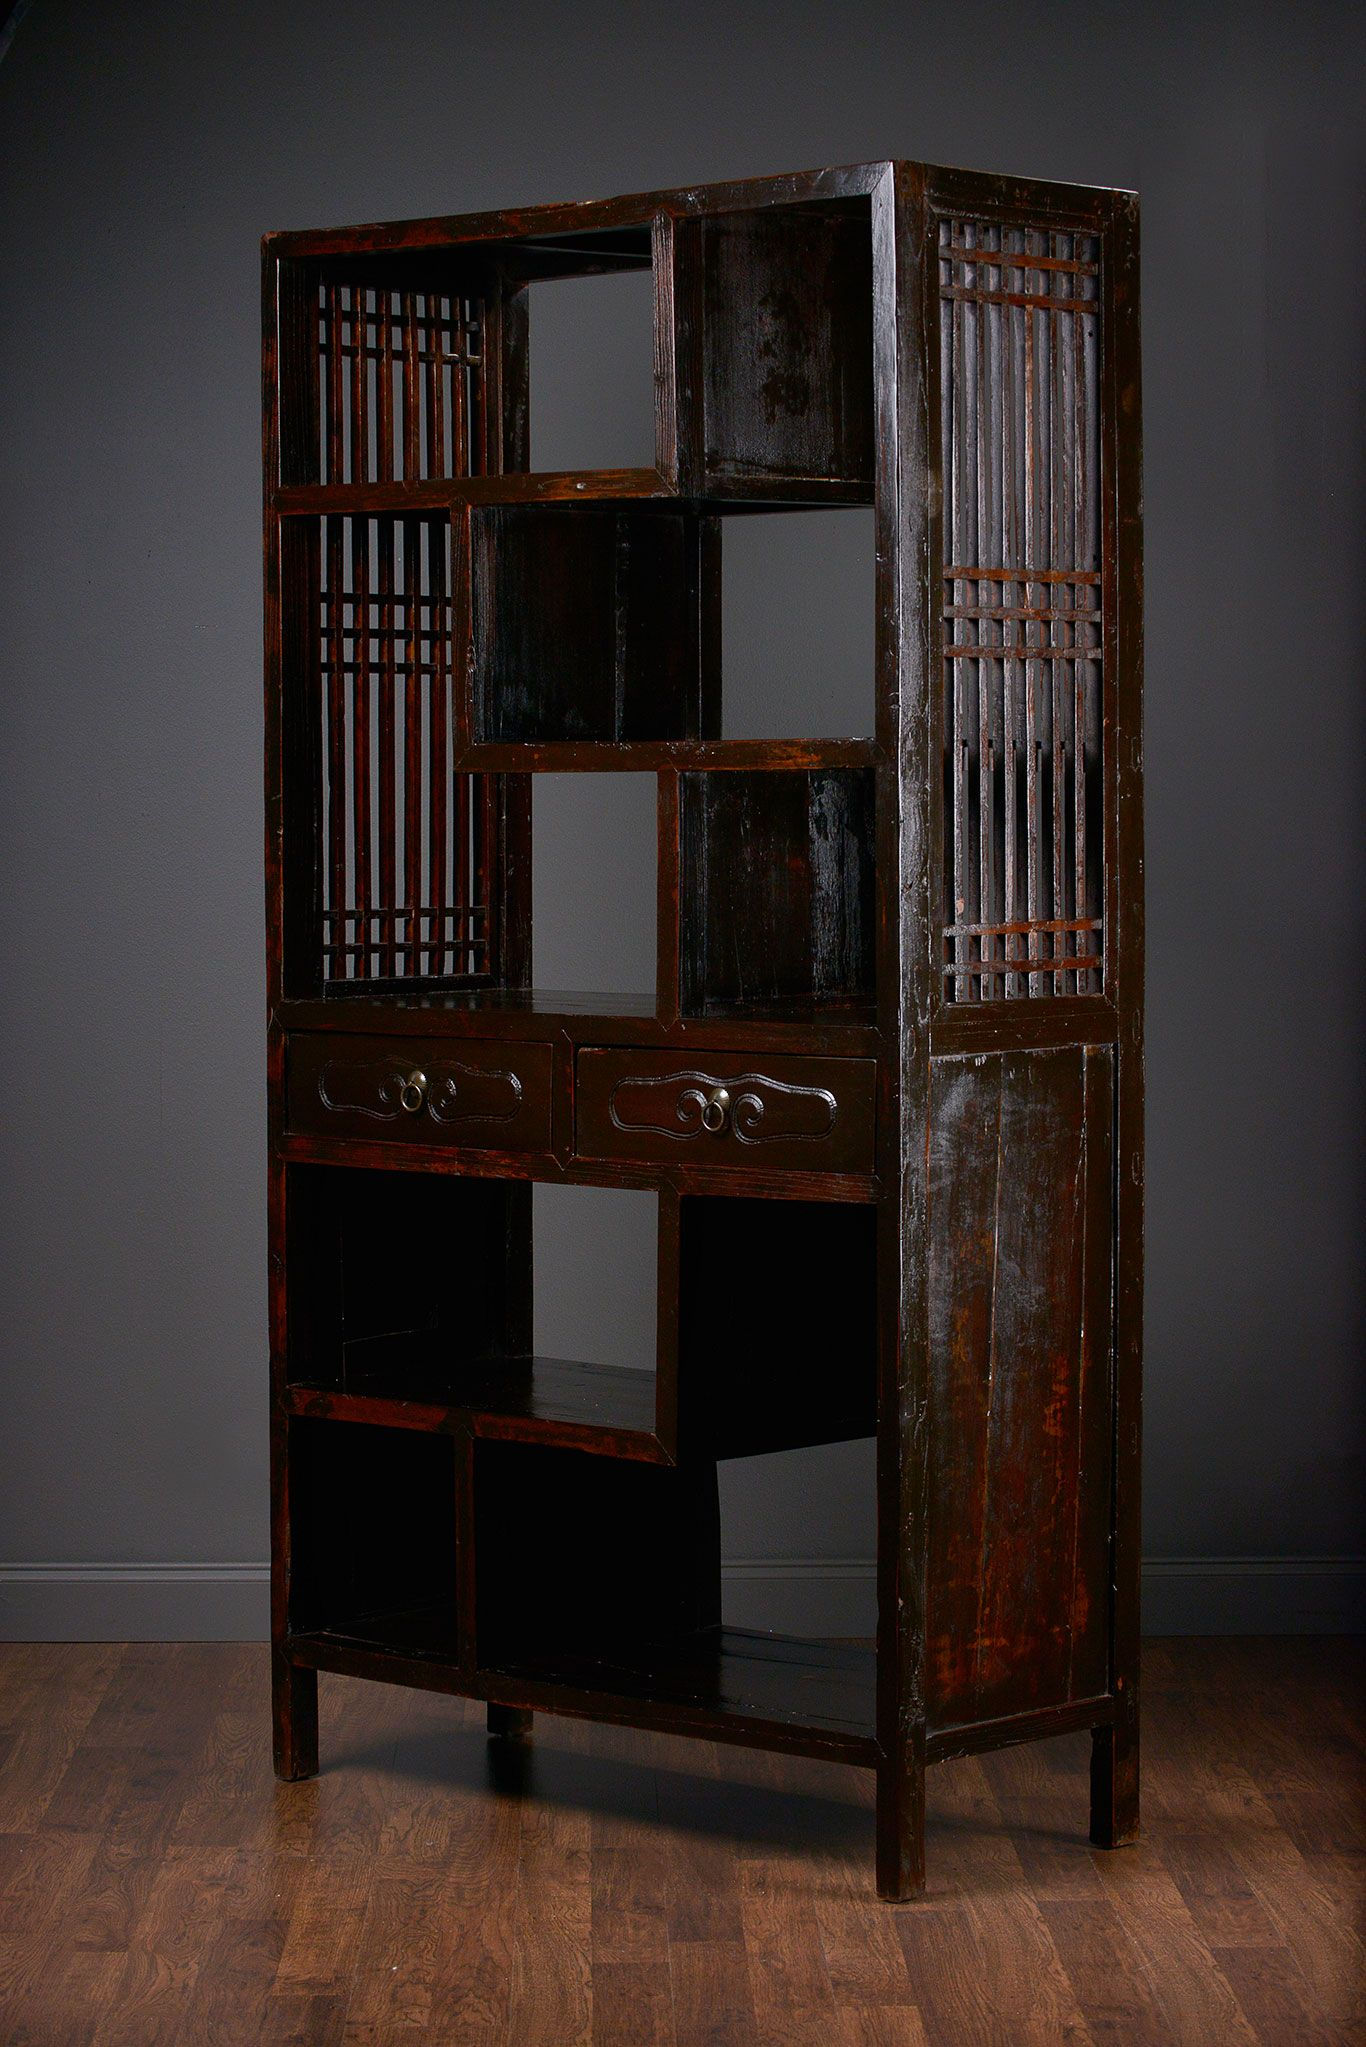 Great Antique Chinese Lacquered #Elm Scholaru0027s #Bookcase At #Houston #Mecox  #interiordesign #